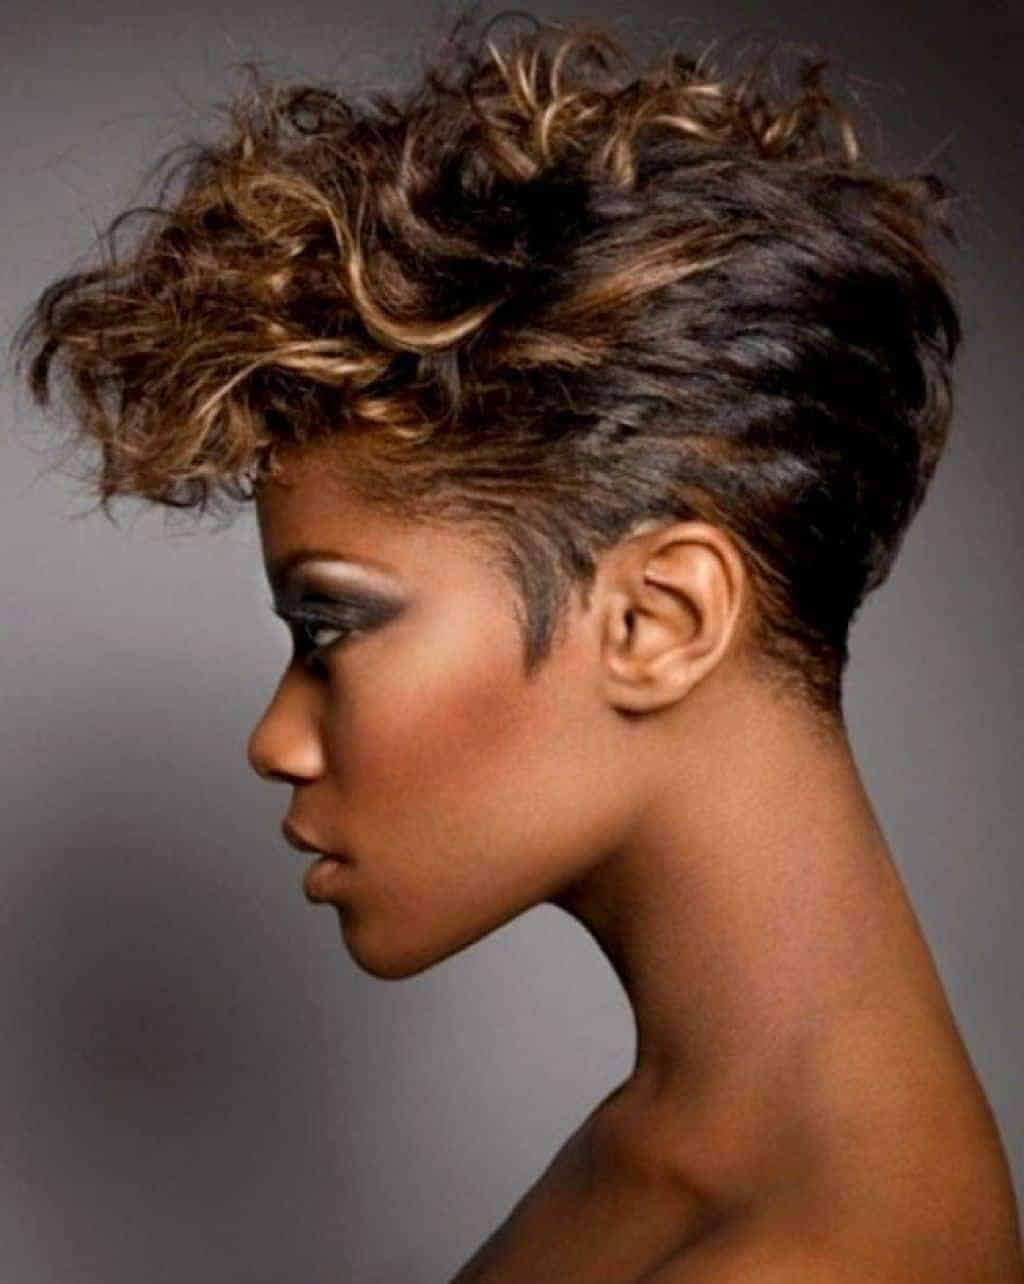 Swell Short Natural Hairstyles For Black Women 2015 Women Styles Short Hairstyles Gunalazisus